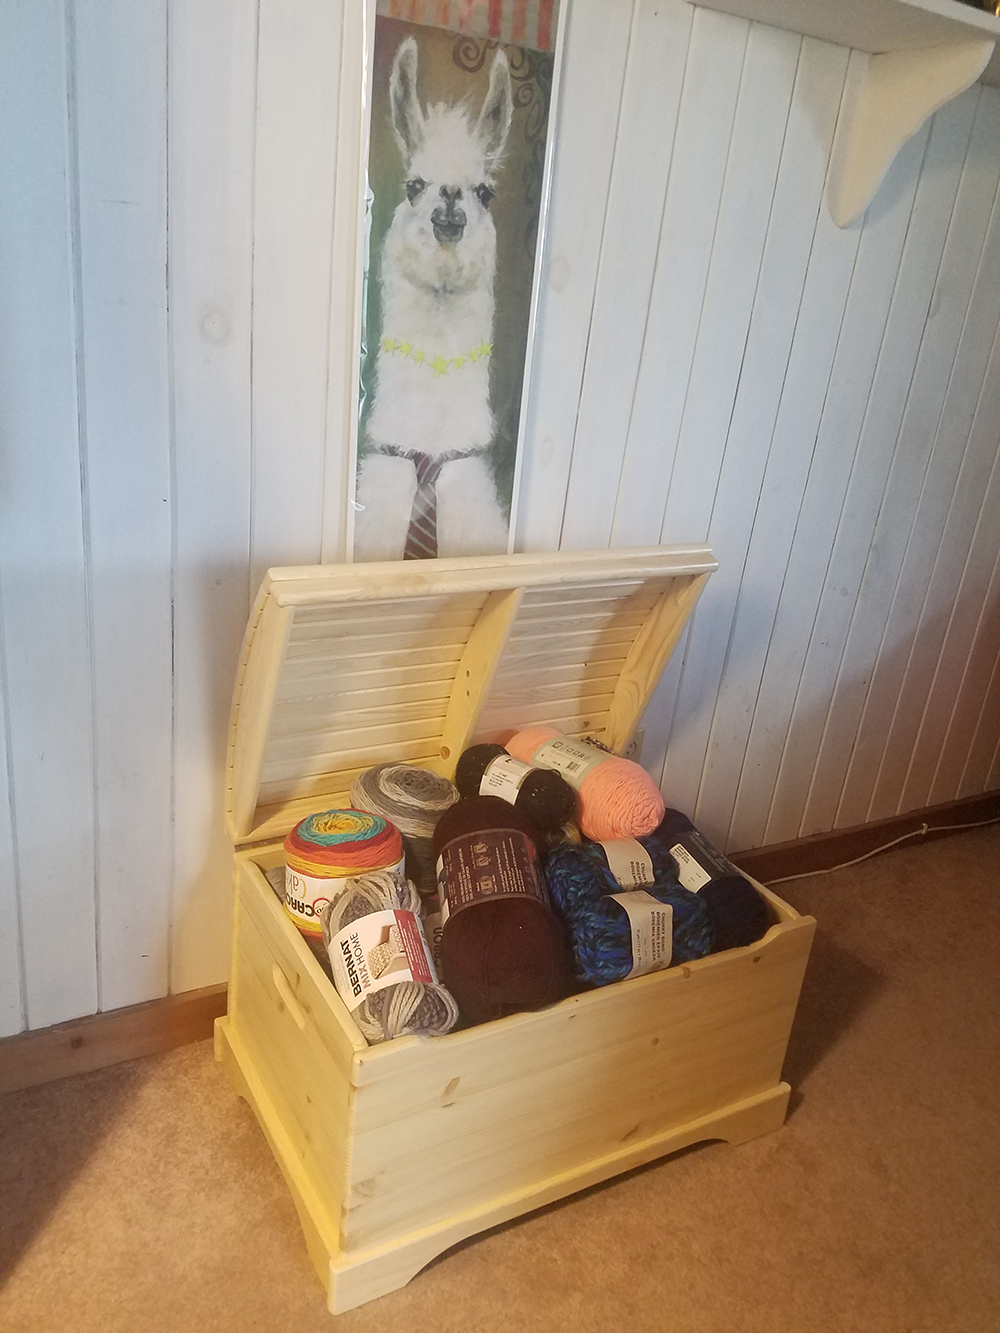 Review: Captain's Chest Wooden Toy Box - It's The Perfect Storage For Yarn!